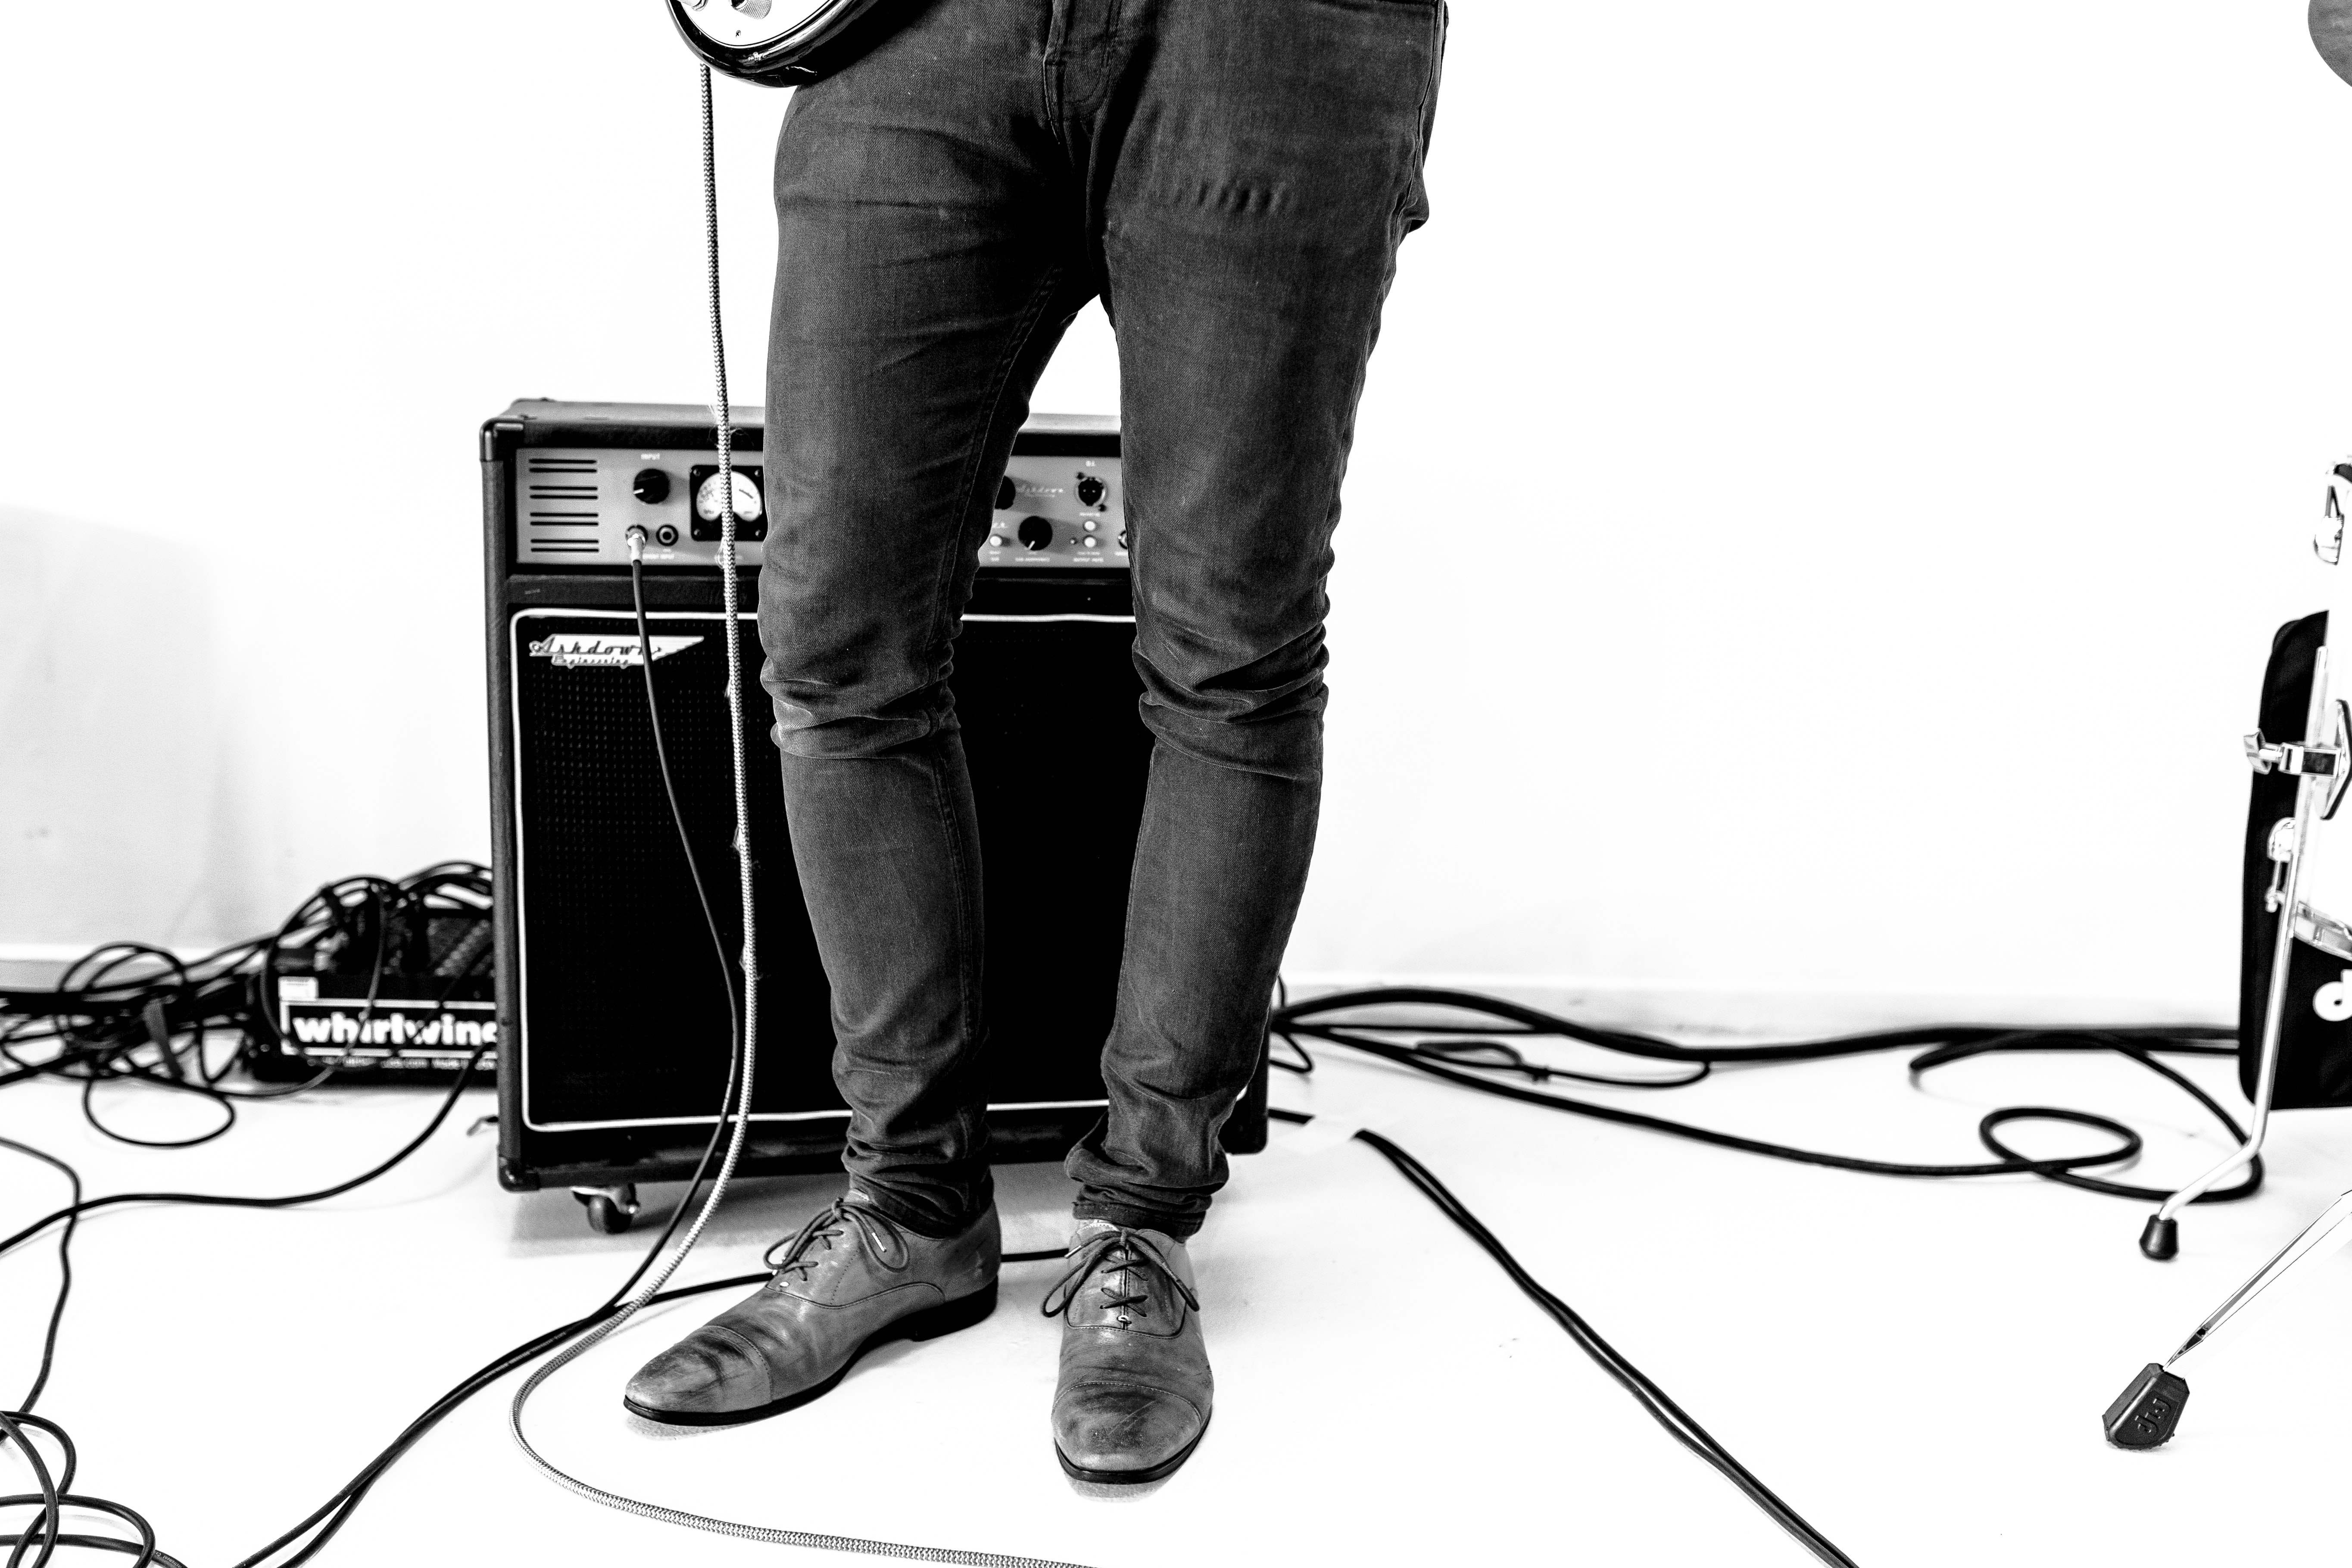 A black-and-white shot of a person in jeans playing the guitar next to an amplifier